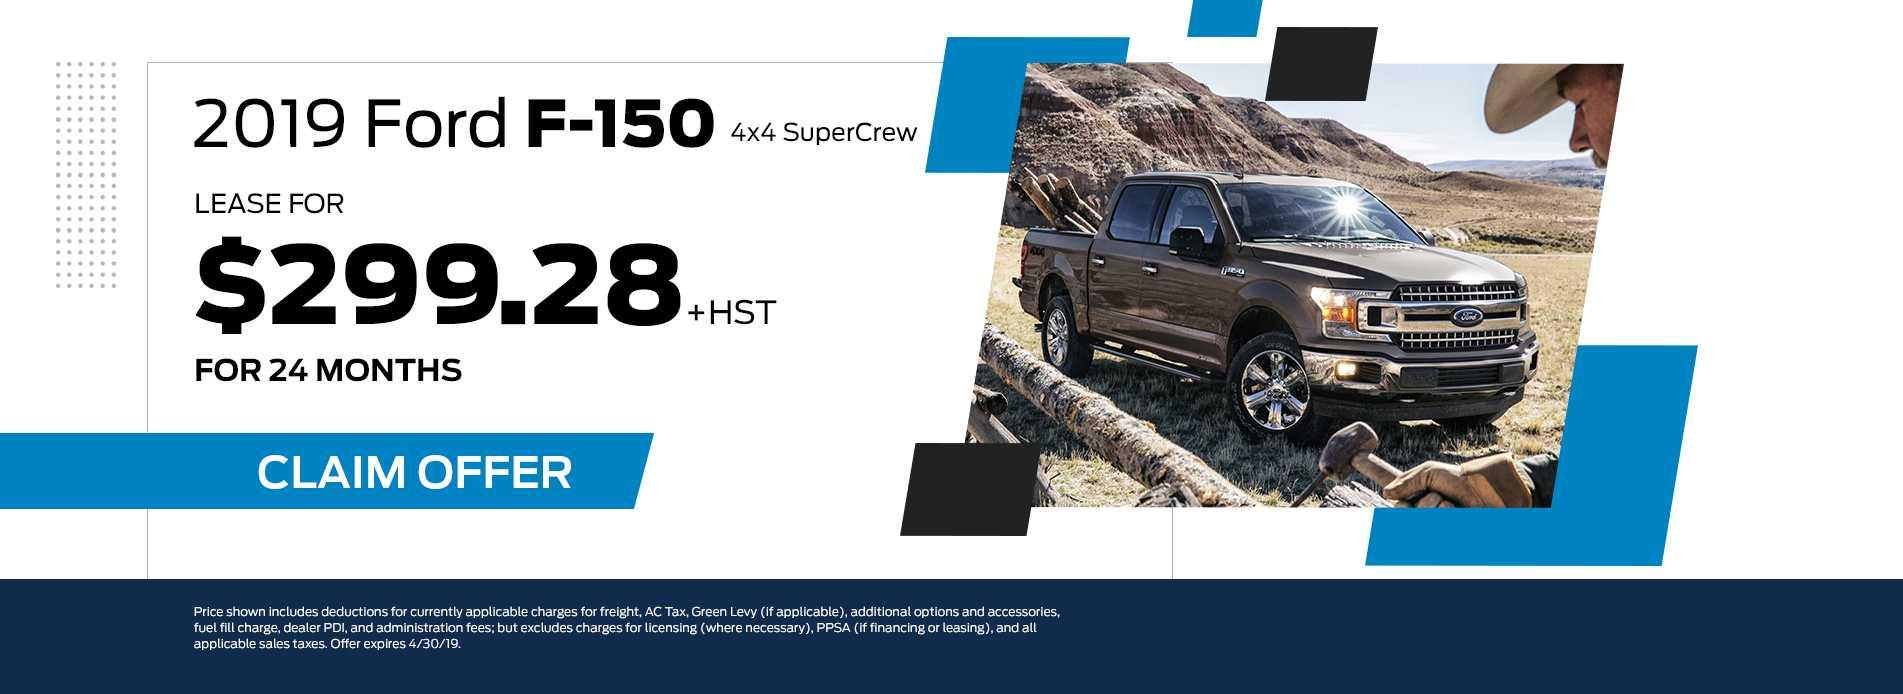 Barrie Ford April F-150 Offer